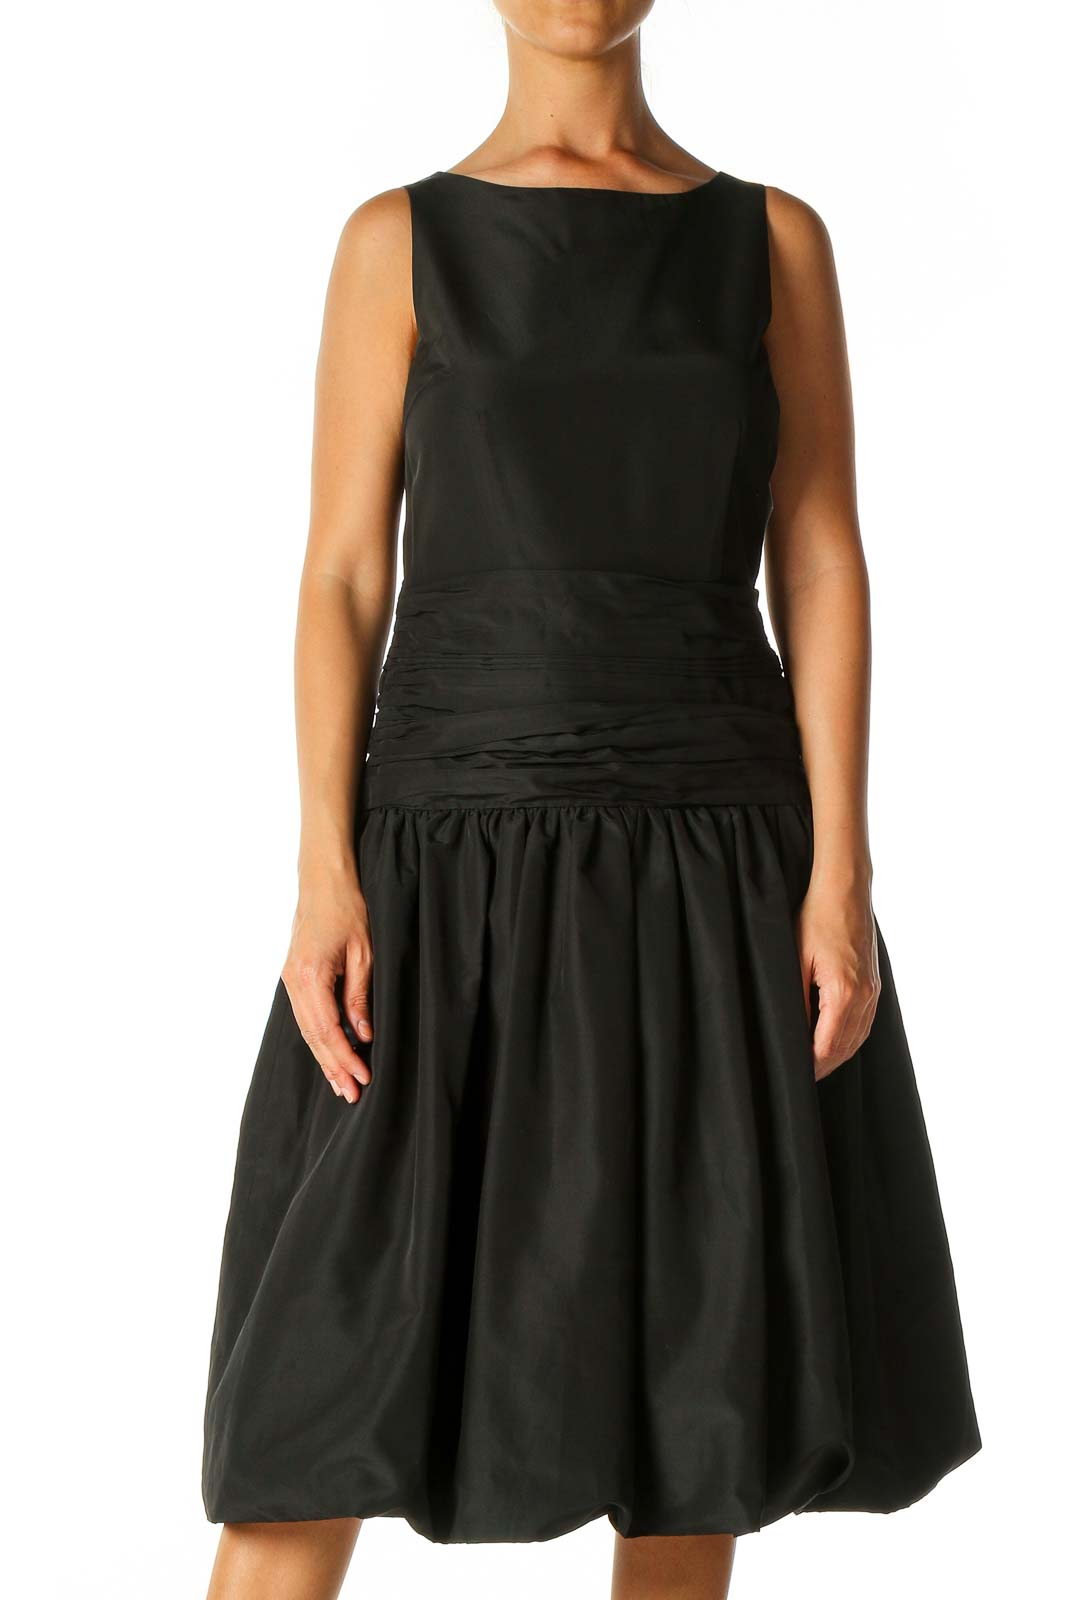 Black Solid Fit & Flare Dress Front